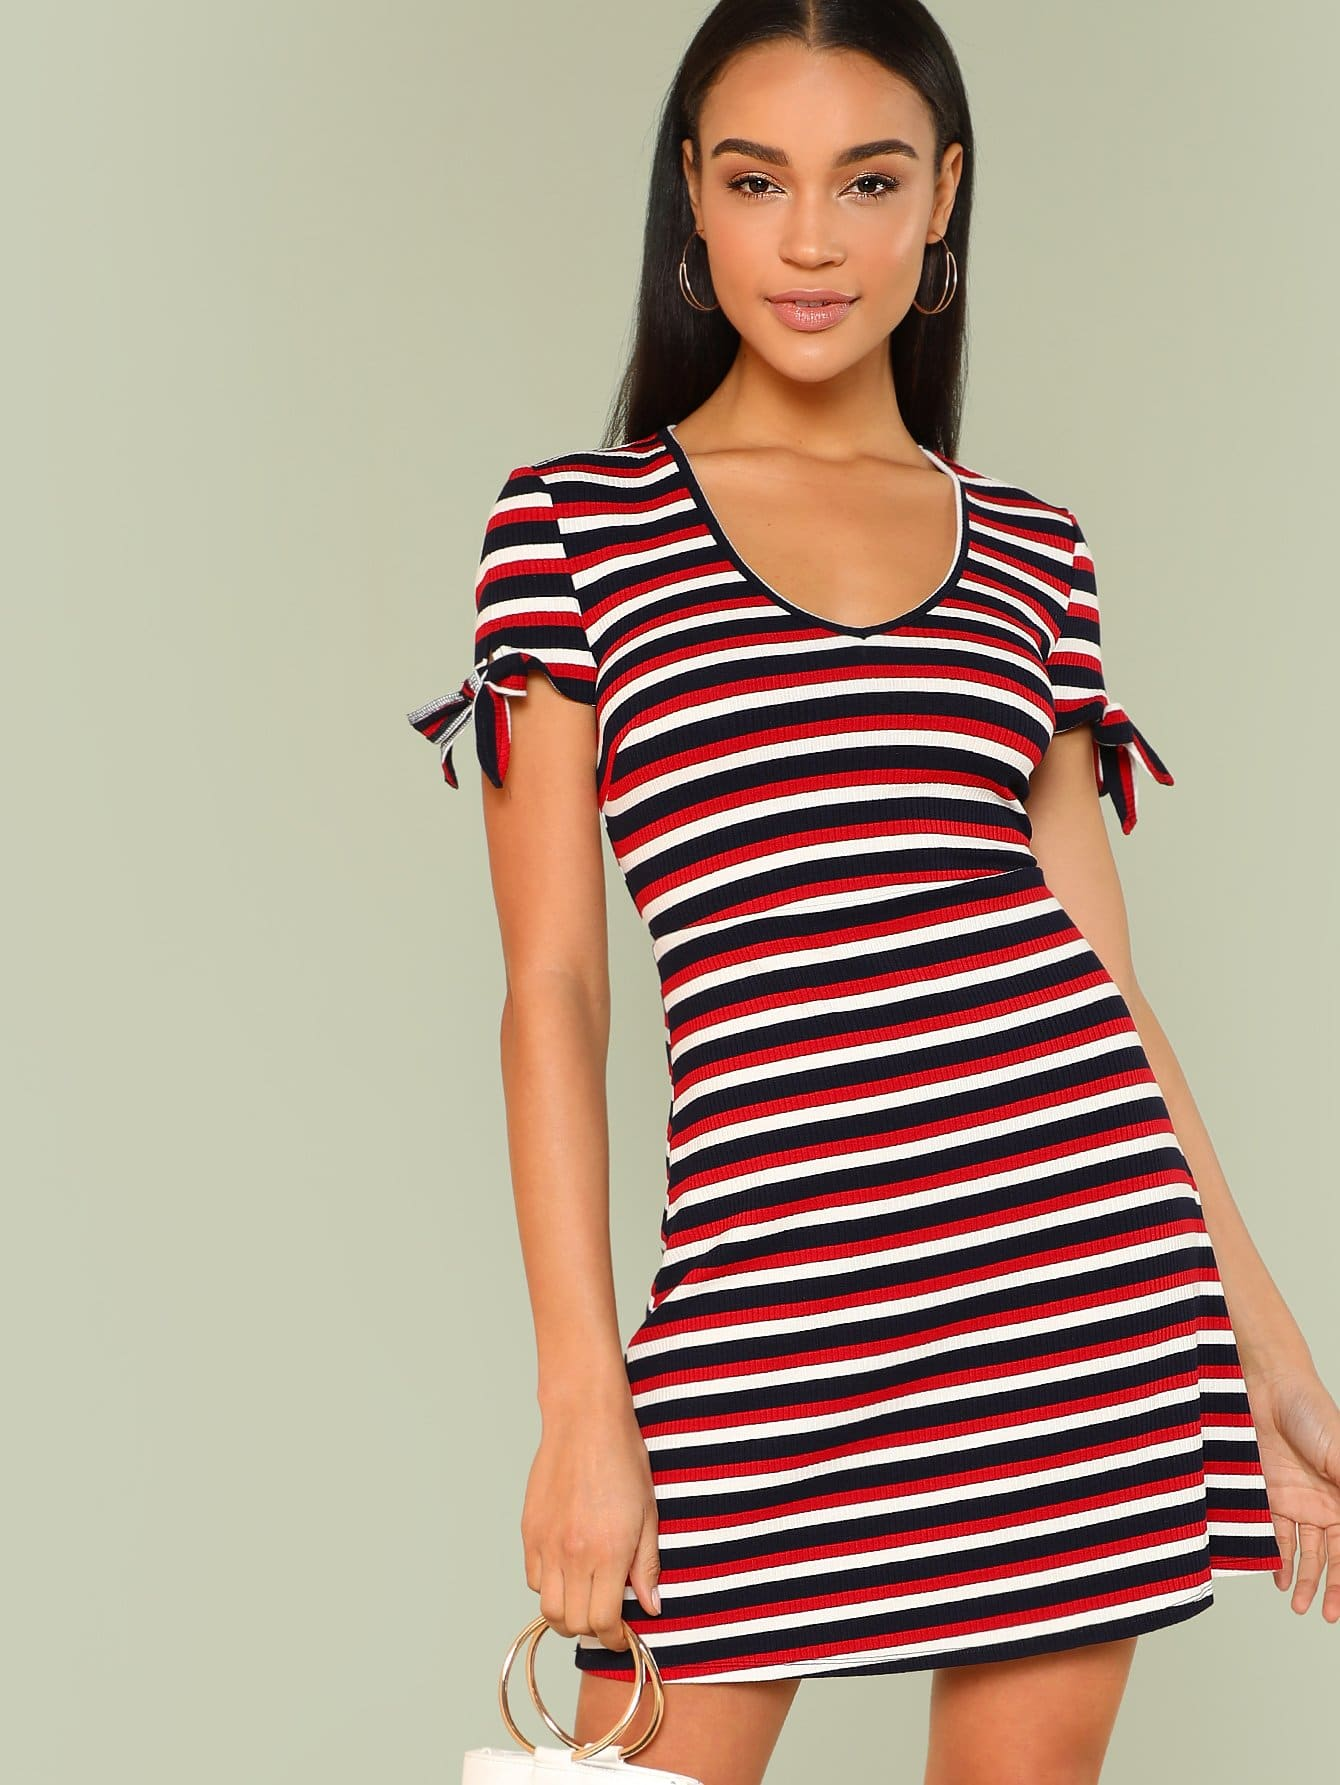 V Neck Tied Cuff Striped Dress letter print neck and cuff striped dress